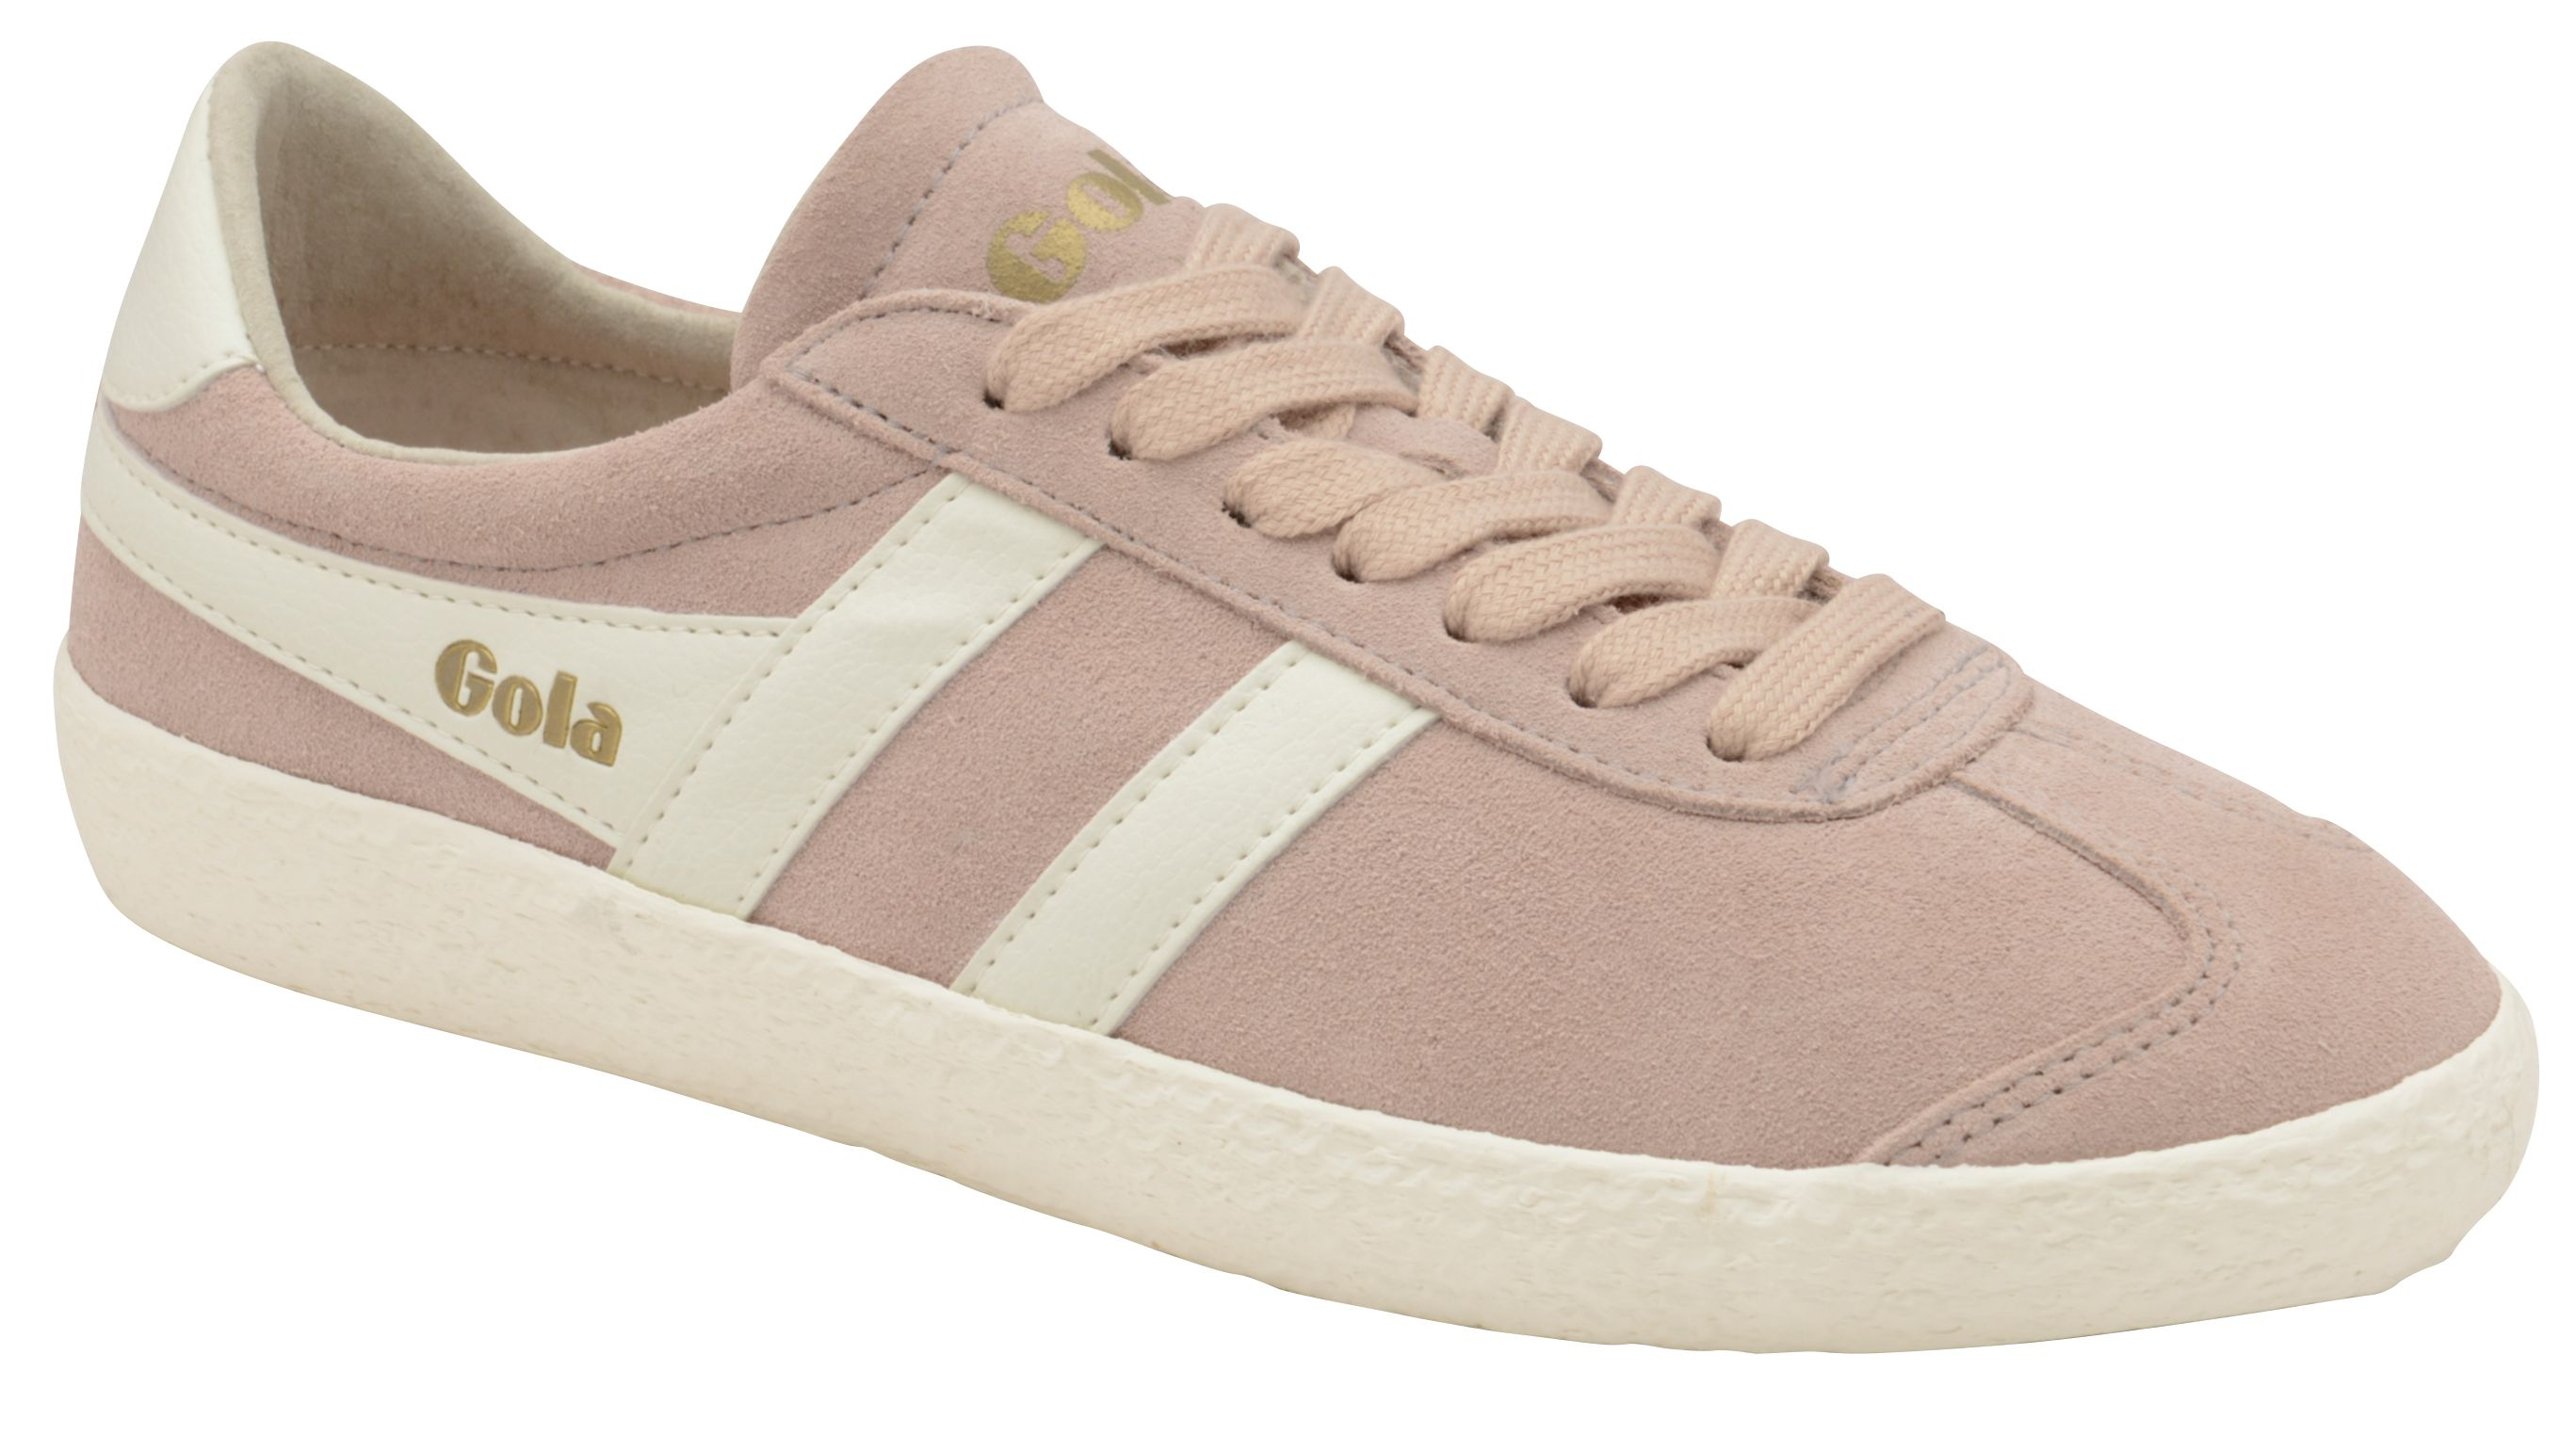 Gola Specialist Lace Up Trainers, Blossom